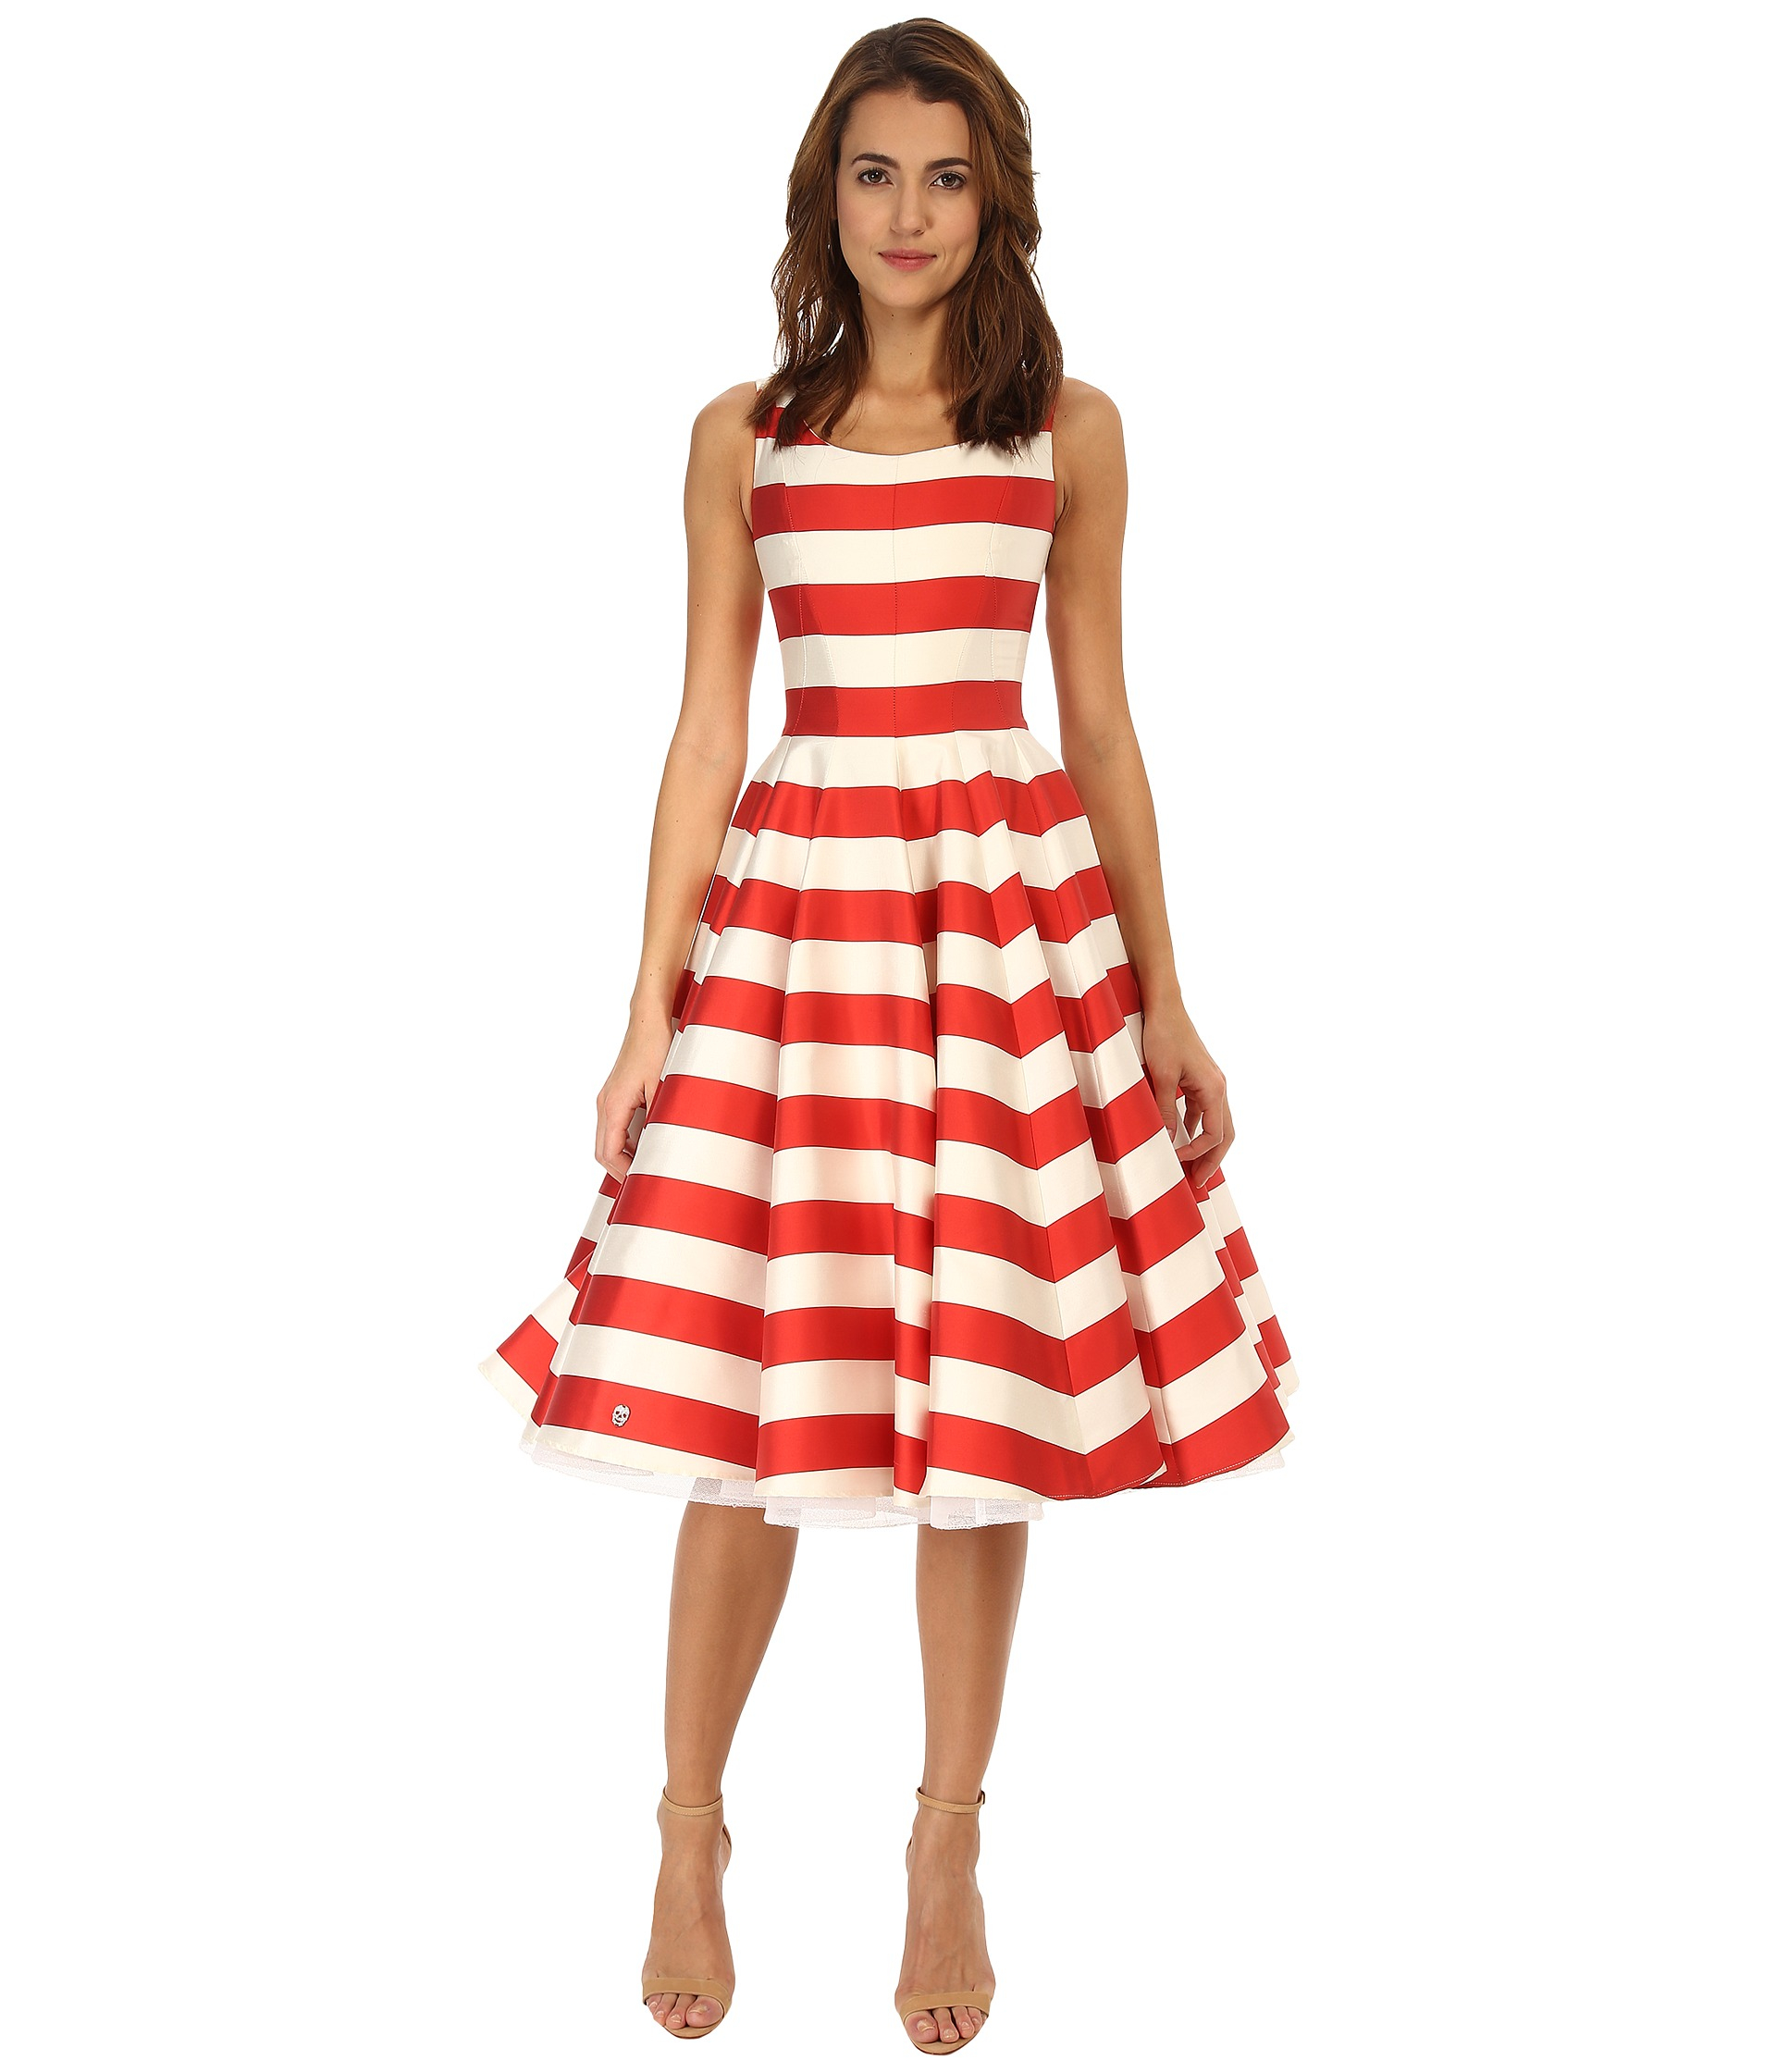 Lyst - Philipp Plein Marine Lover Dress in Red